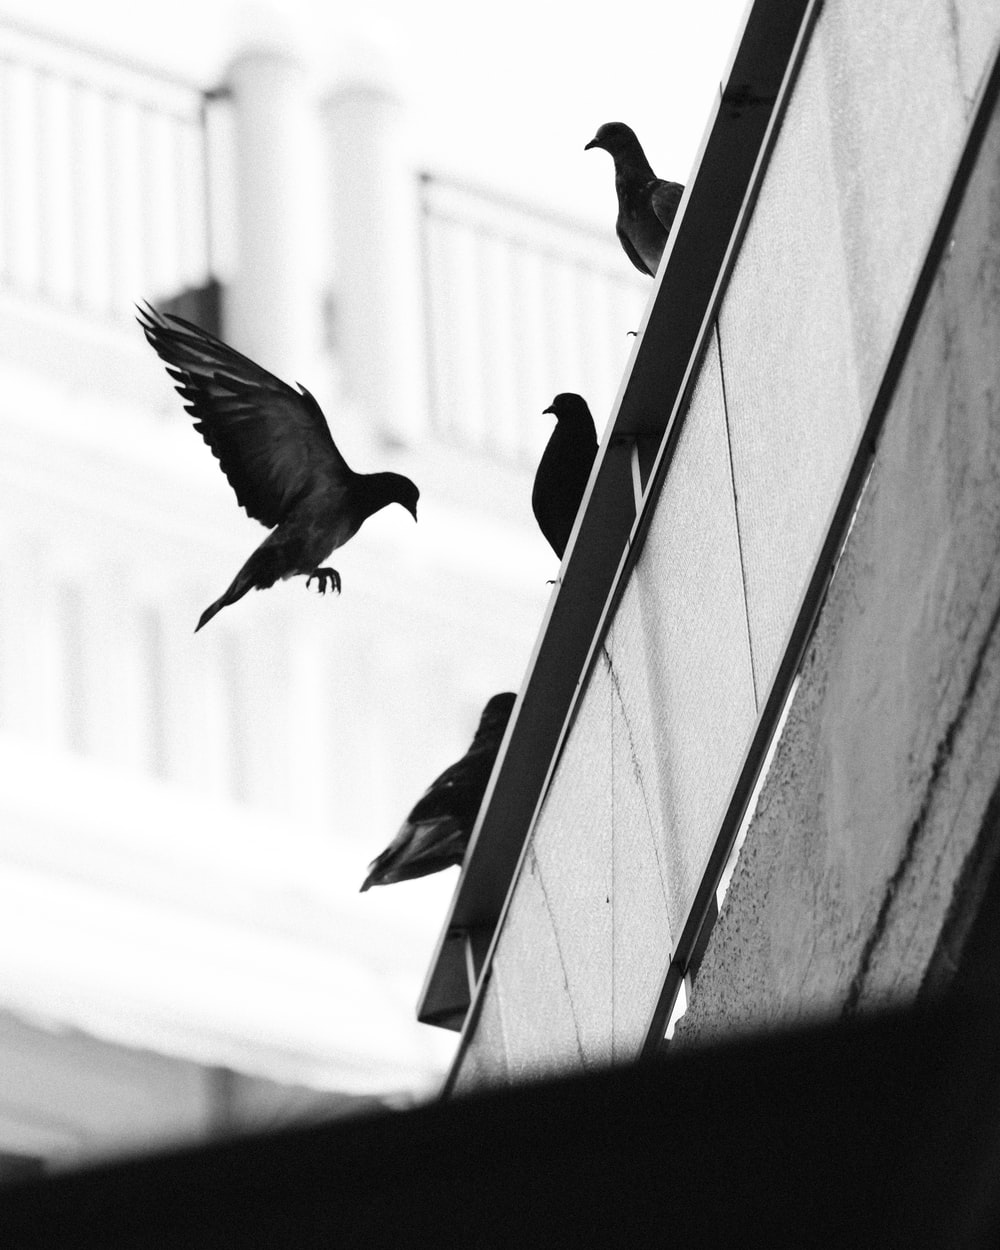 flock of pigeons at the edge of the roof